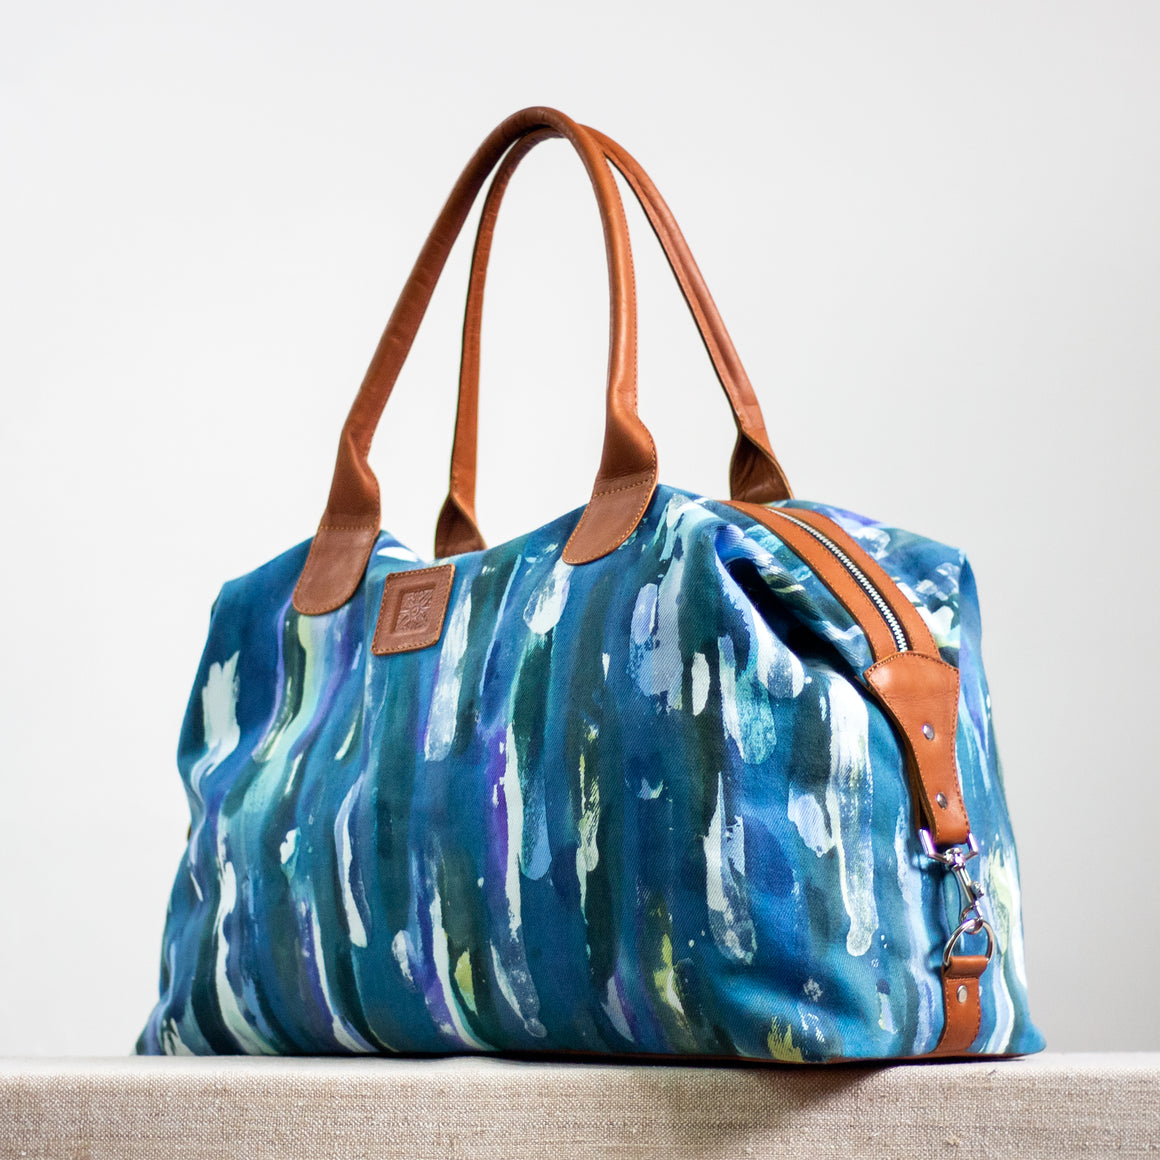 Intrepid Traveler - Convertible Tote - Blue Rain